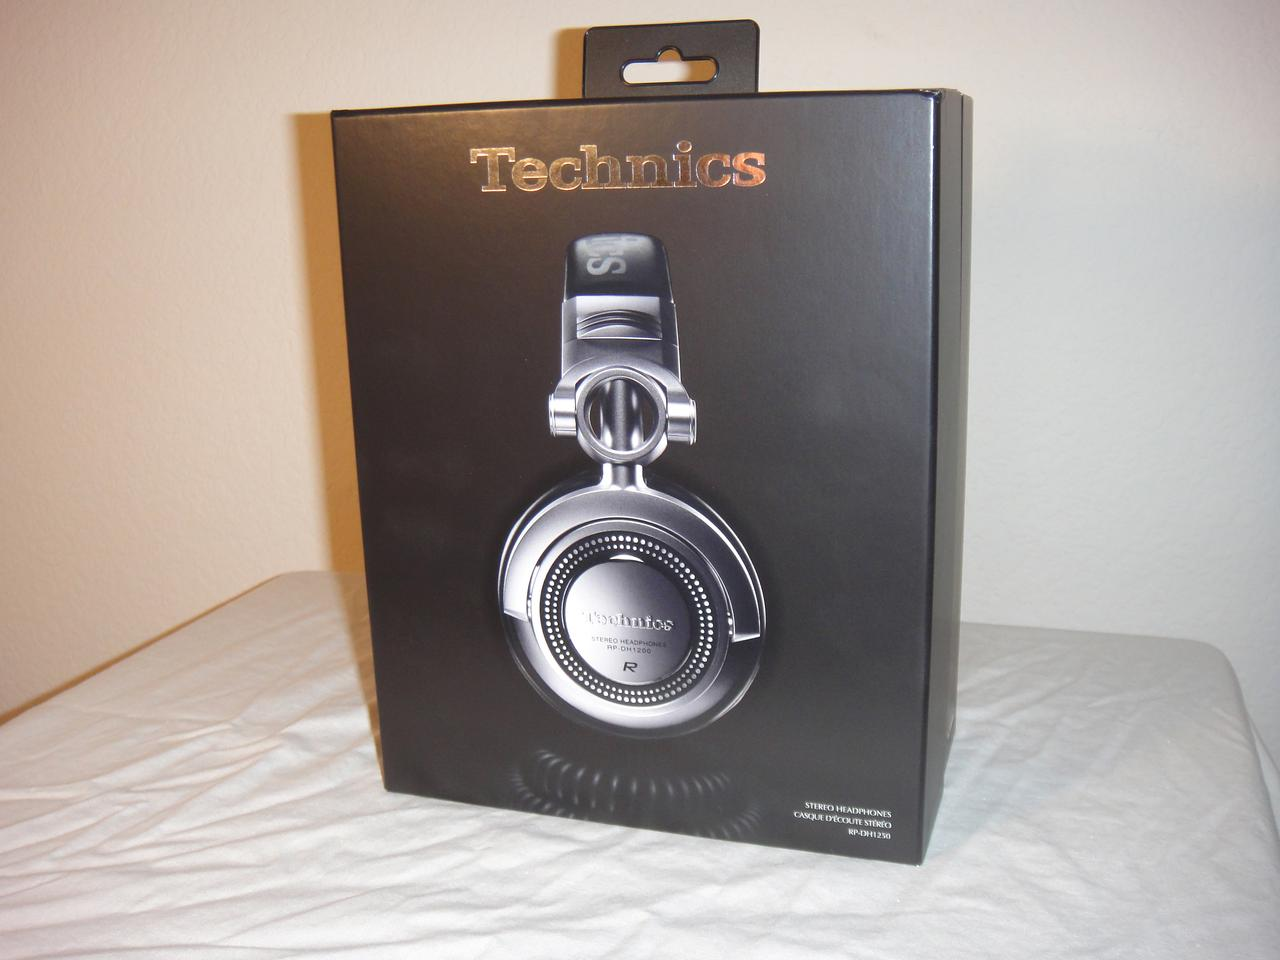 Gizmag goes ears-on with the Technics RP-DH1250 Pro DJ headphones from Panasonic